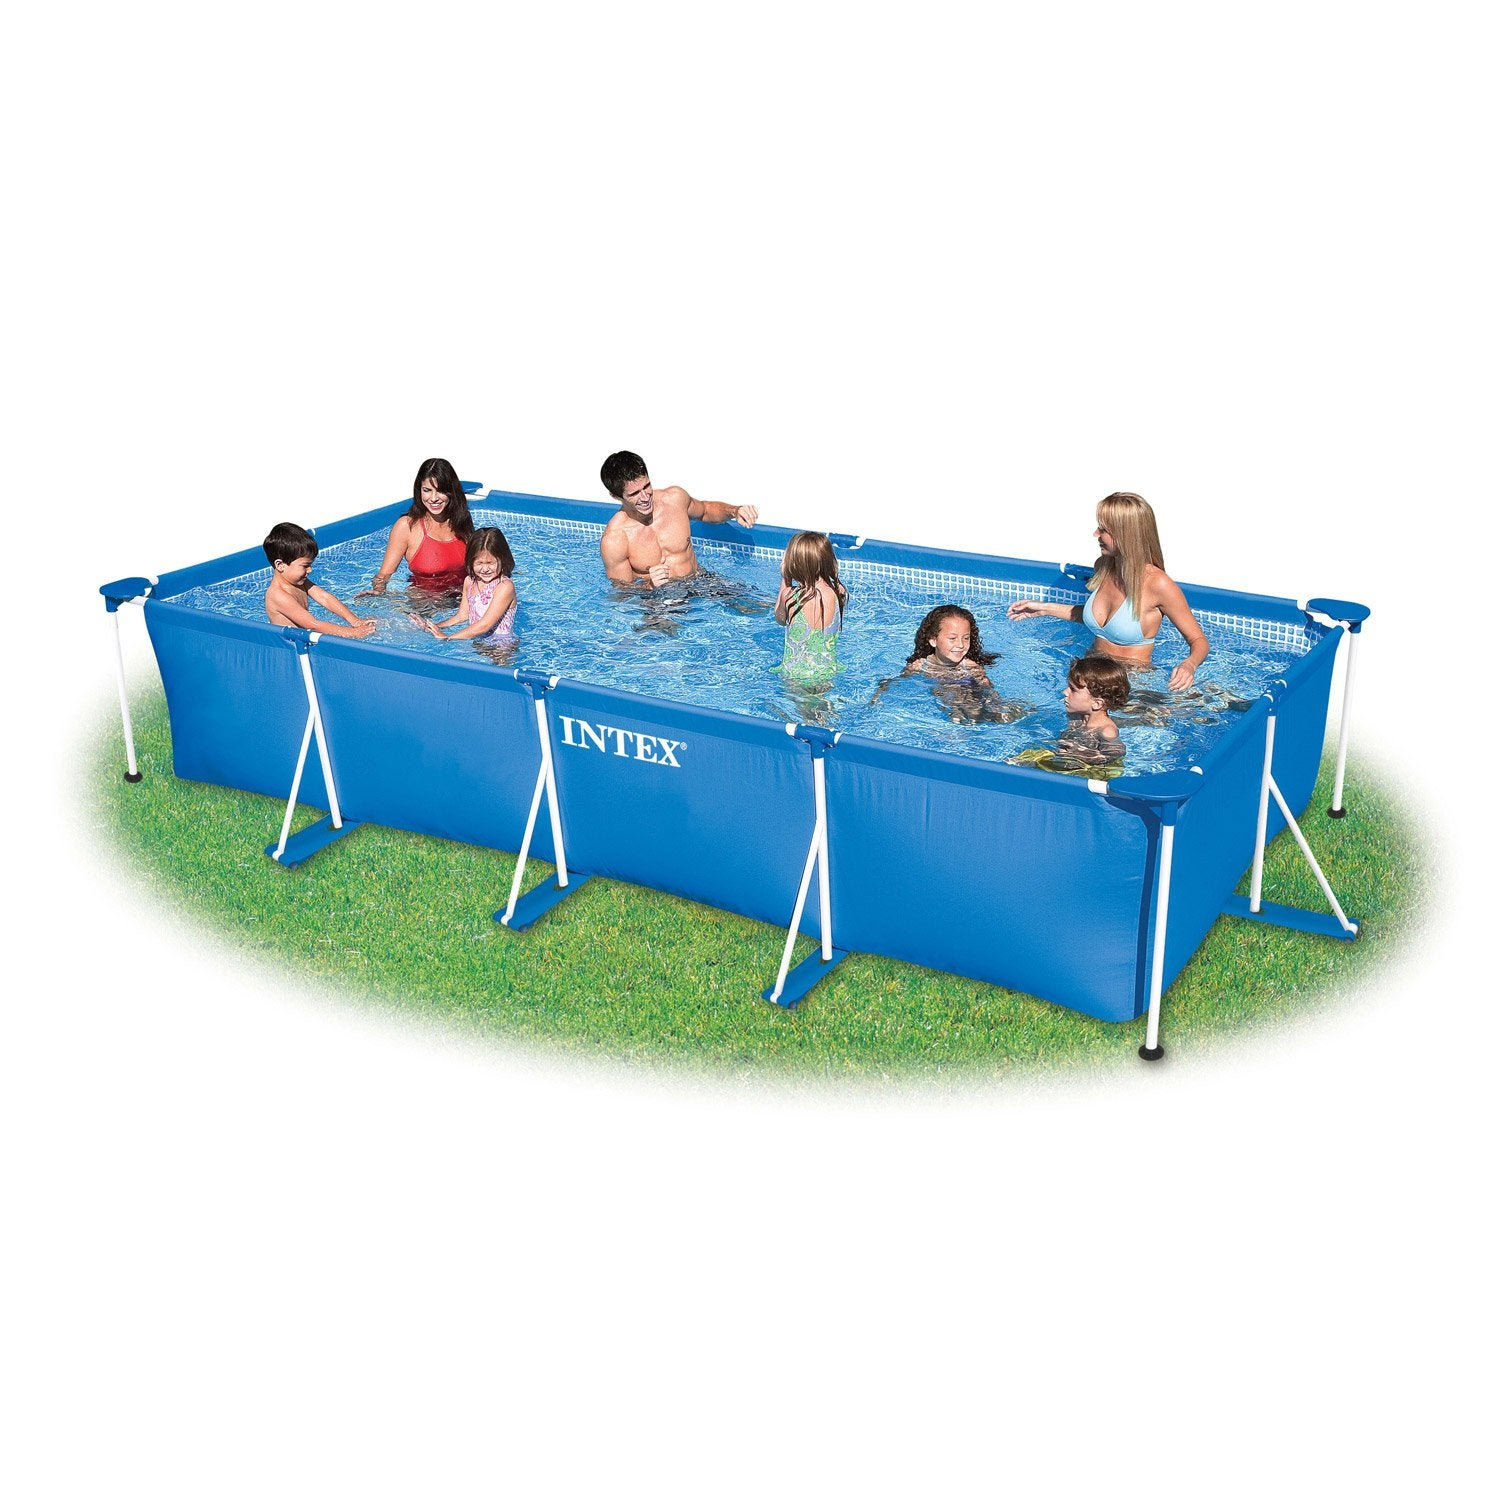 Piscine boudin leroy merlin for Piscine a boudin